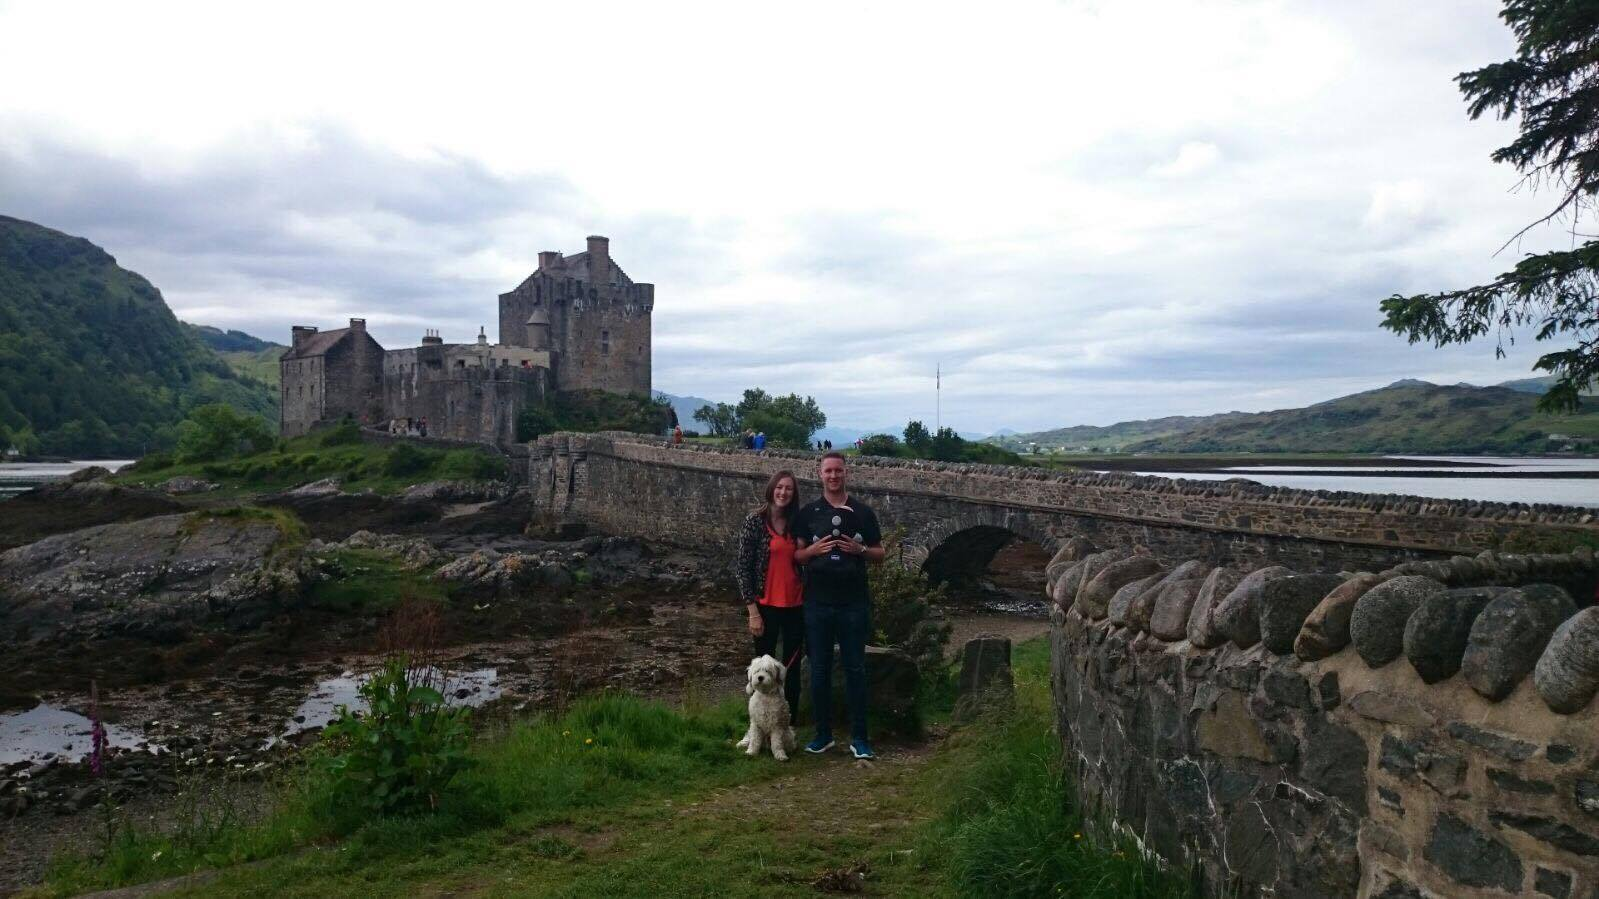 Mark, Sarah and Oliver with the family dog during their visit to the castle when the camera was lost.